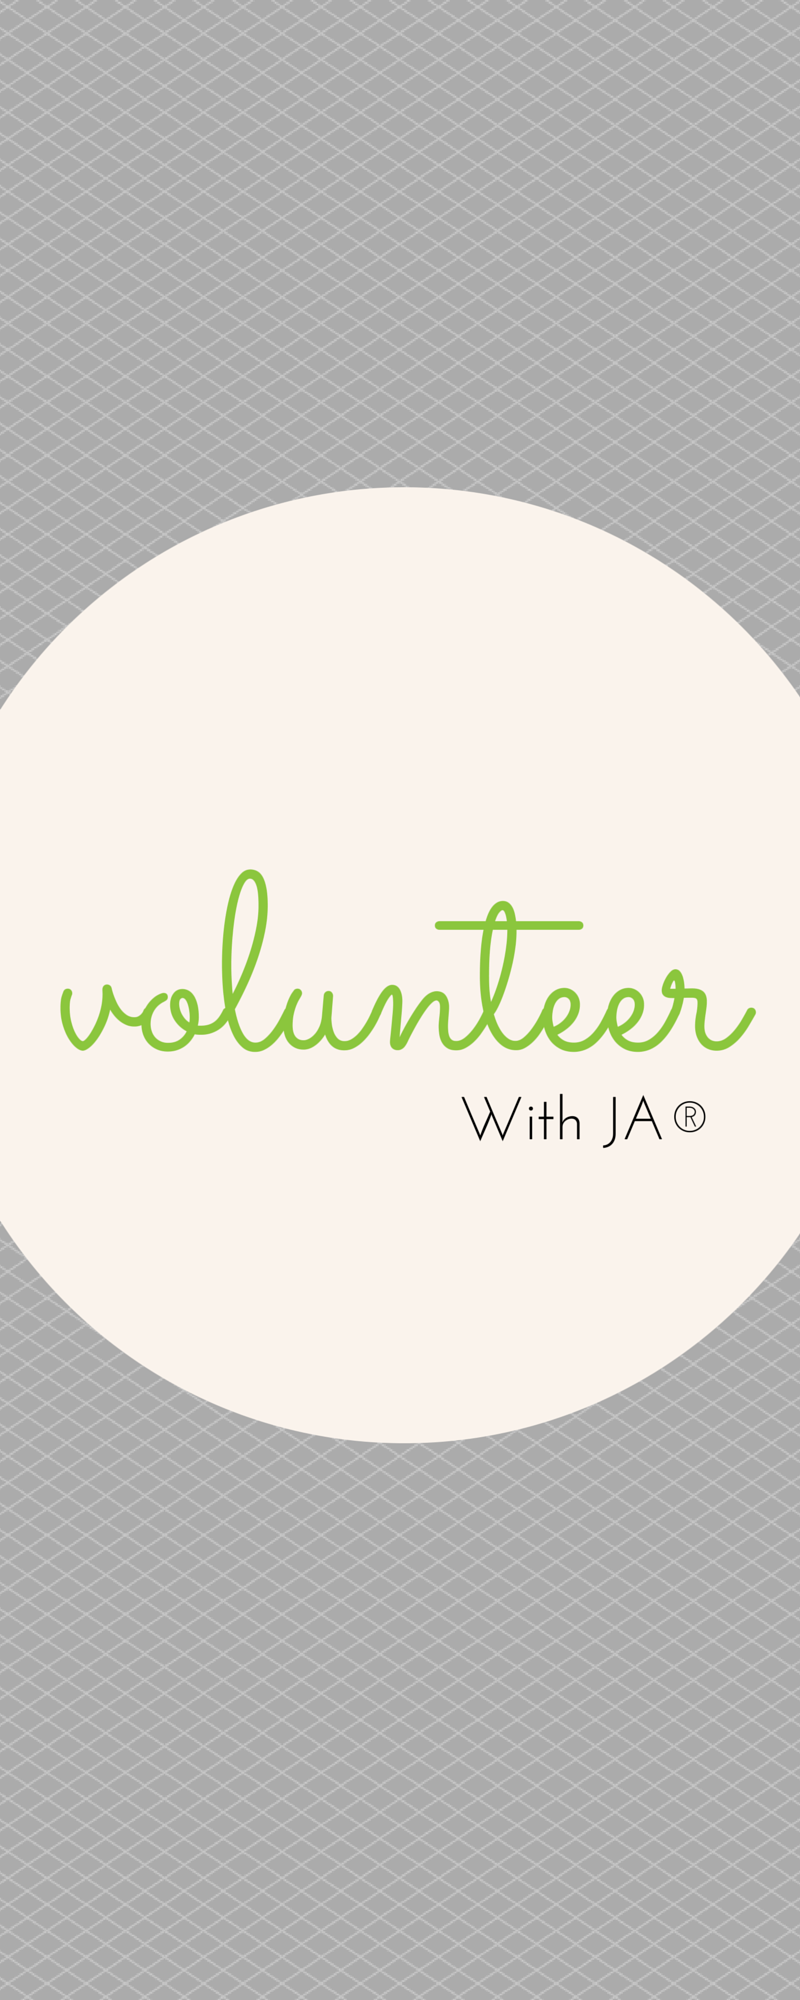 You can be their hero by being a JA® volunteer. We offer flexible training and volunteer opportunities for groups of all sizes in the classroom, at JA Finance Park®, or on-site at your company. Explore our opportunities, share your career and life experiences, and provide our region's youth with a window to the future.